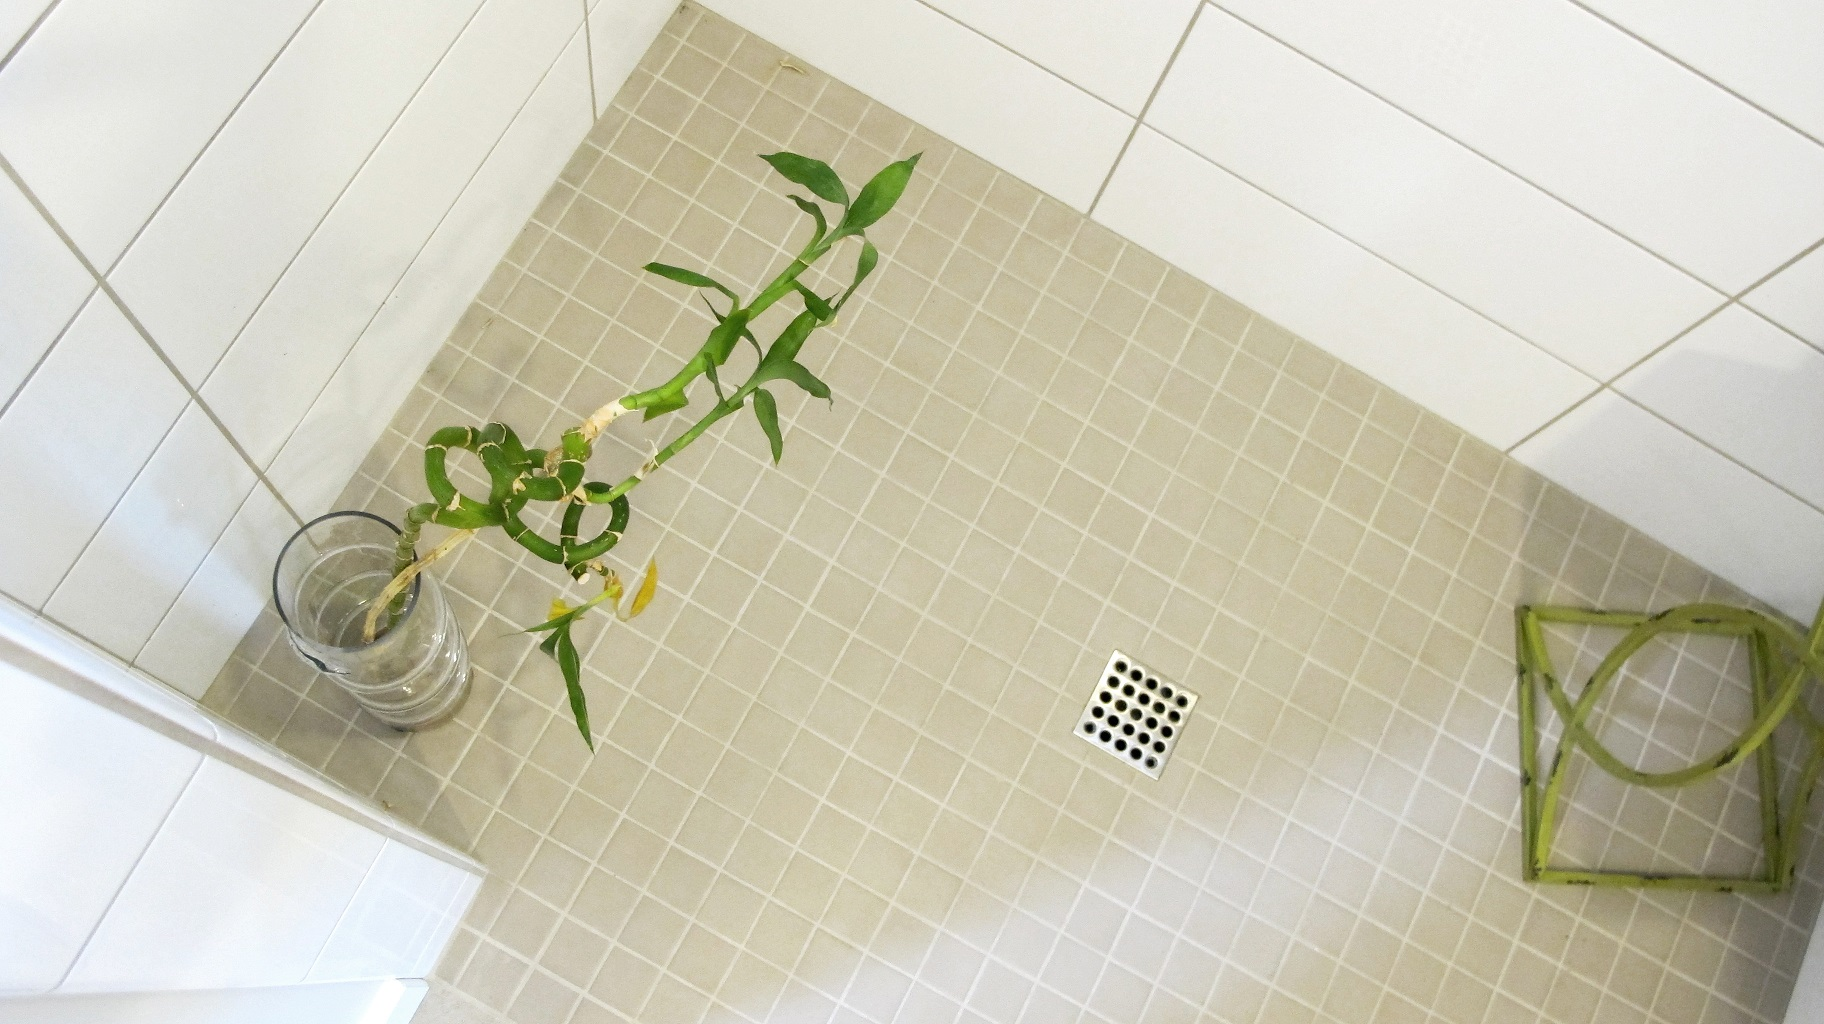 Walk-in shower floor mosaic square drain with Keystone Mosaic in color Uptown Taupe by Daltile Colour & Dimensions subway tile on walls by Thompson Tile in Arctic white